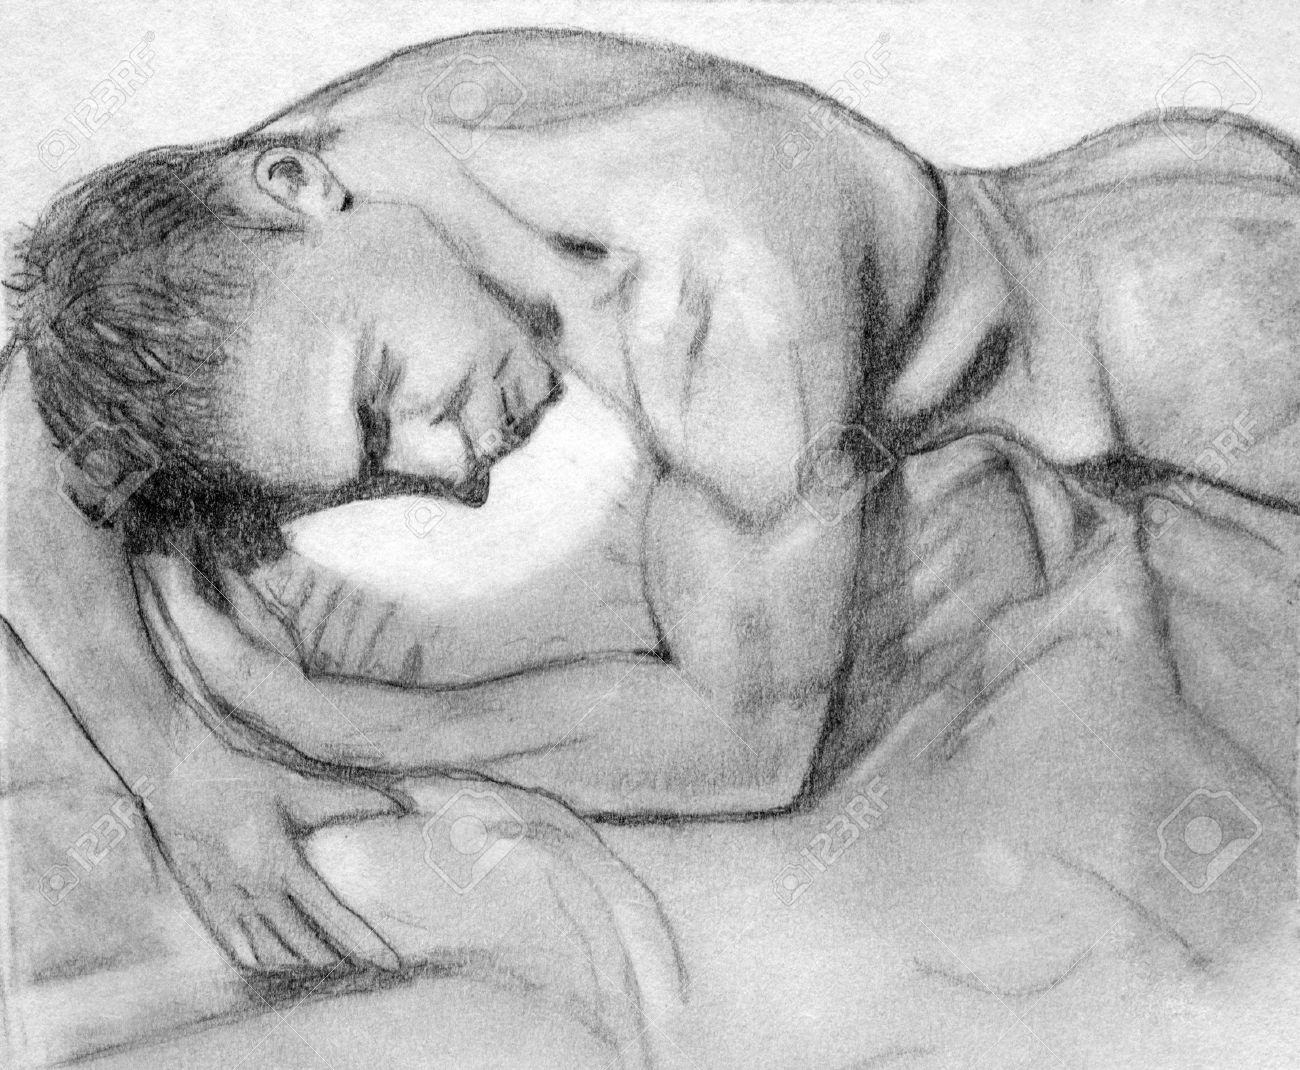 Boy and girls sleeping drawing pencil sketch